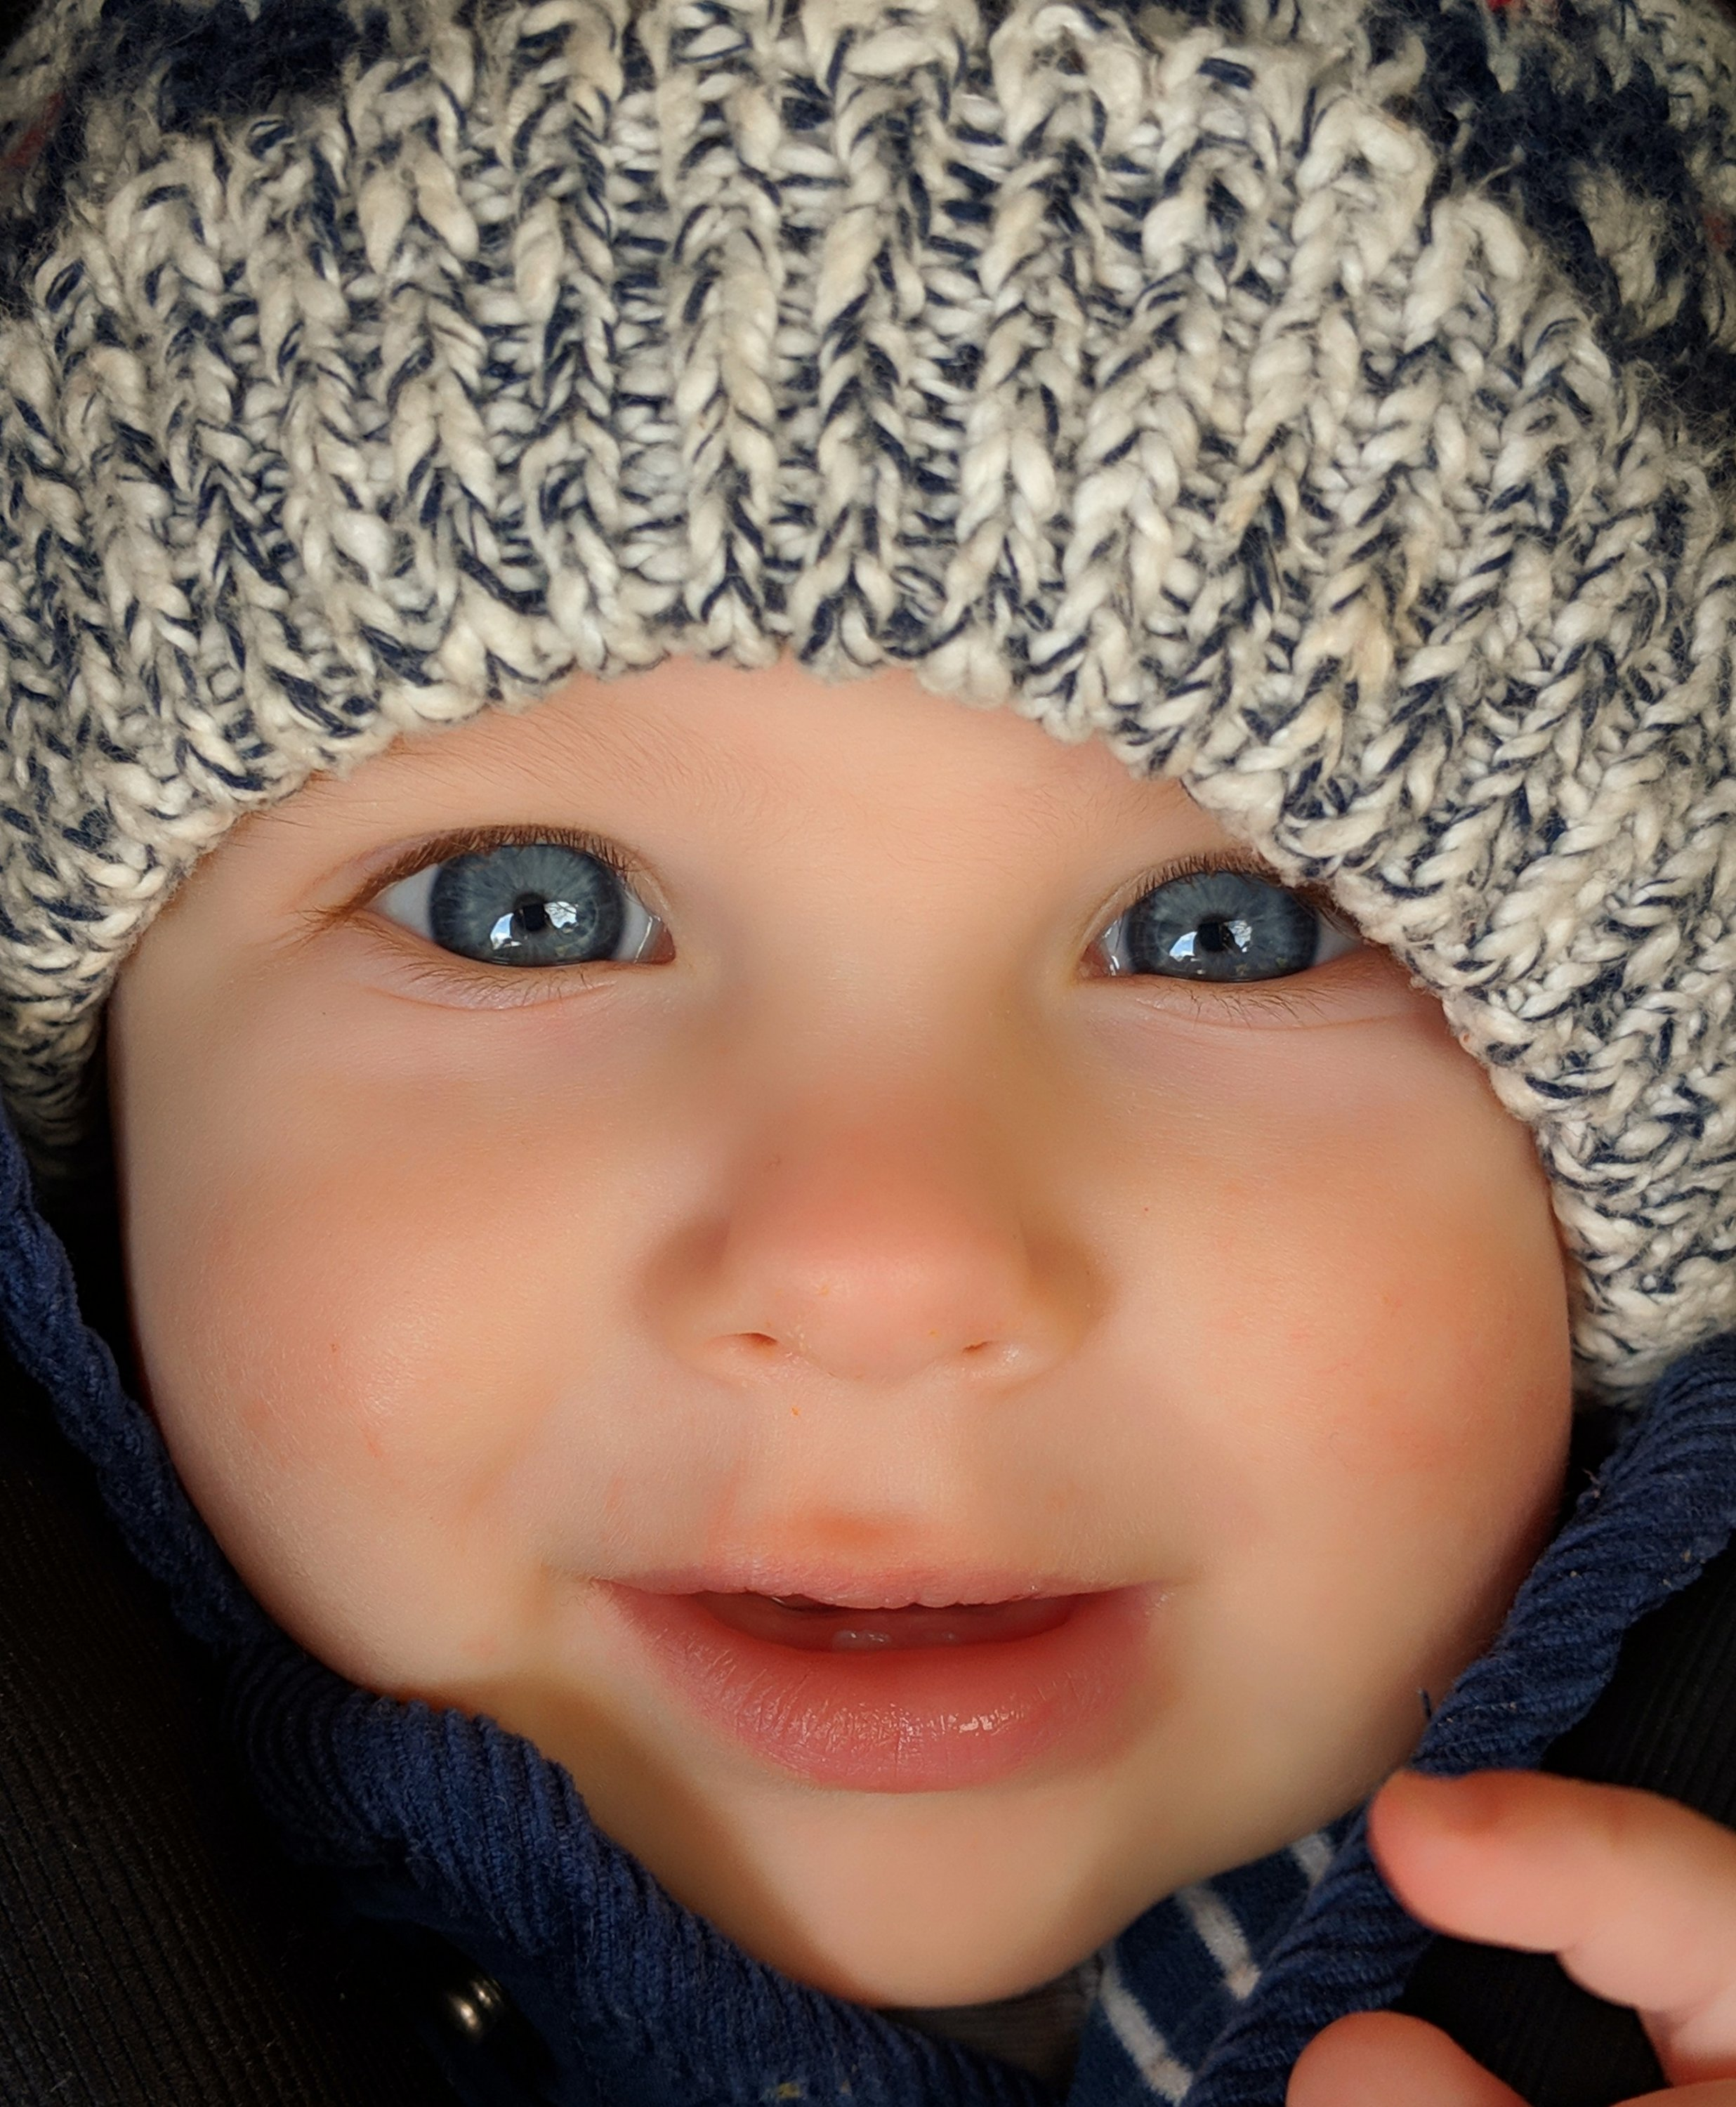 baby dressed in hat looking at camera